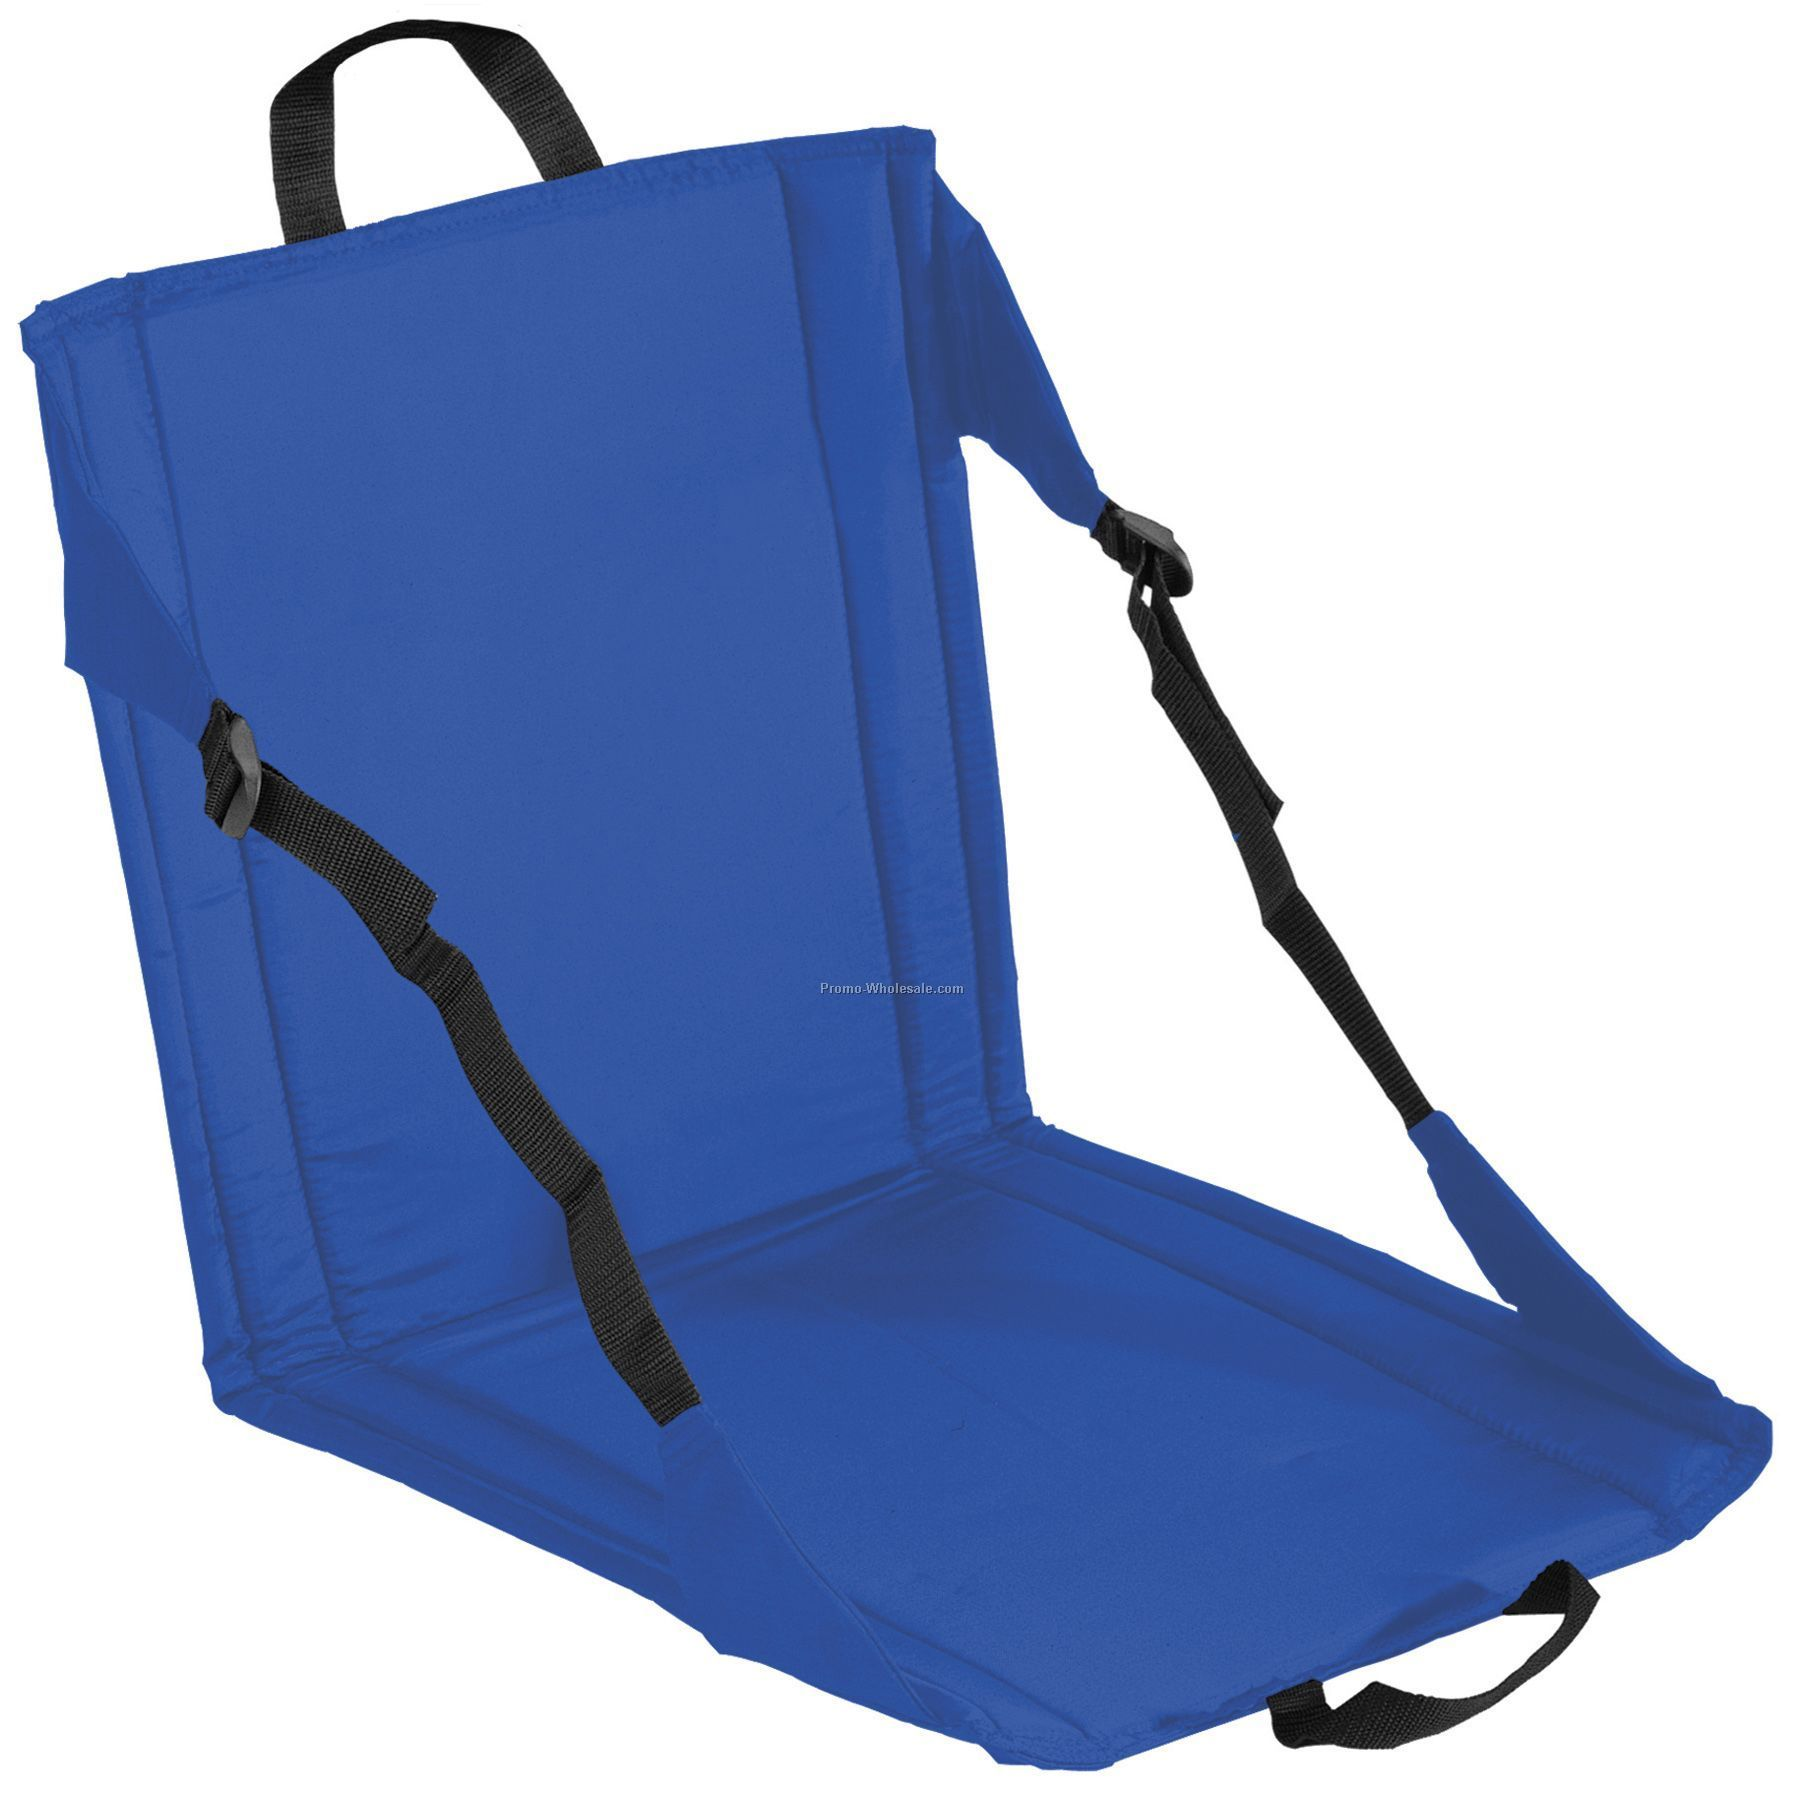 Seat Cushions And Waterproof And Folding Chair Chair Pads Amp Cushions